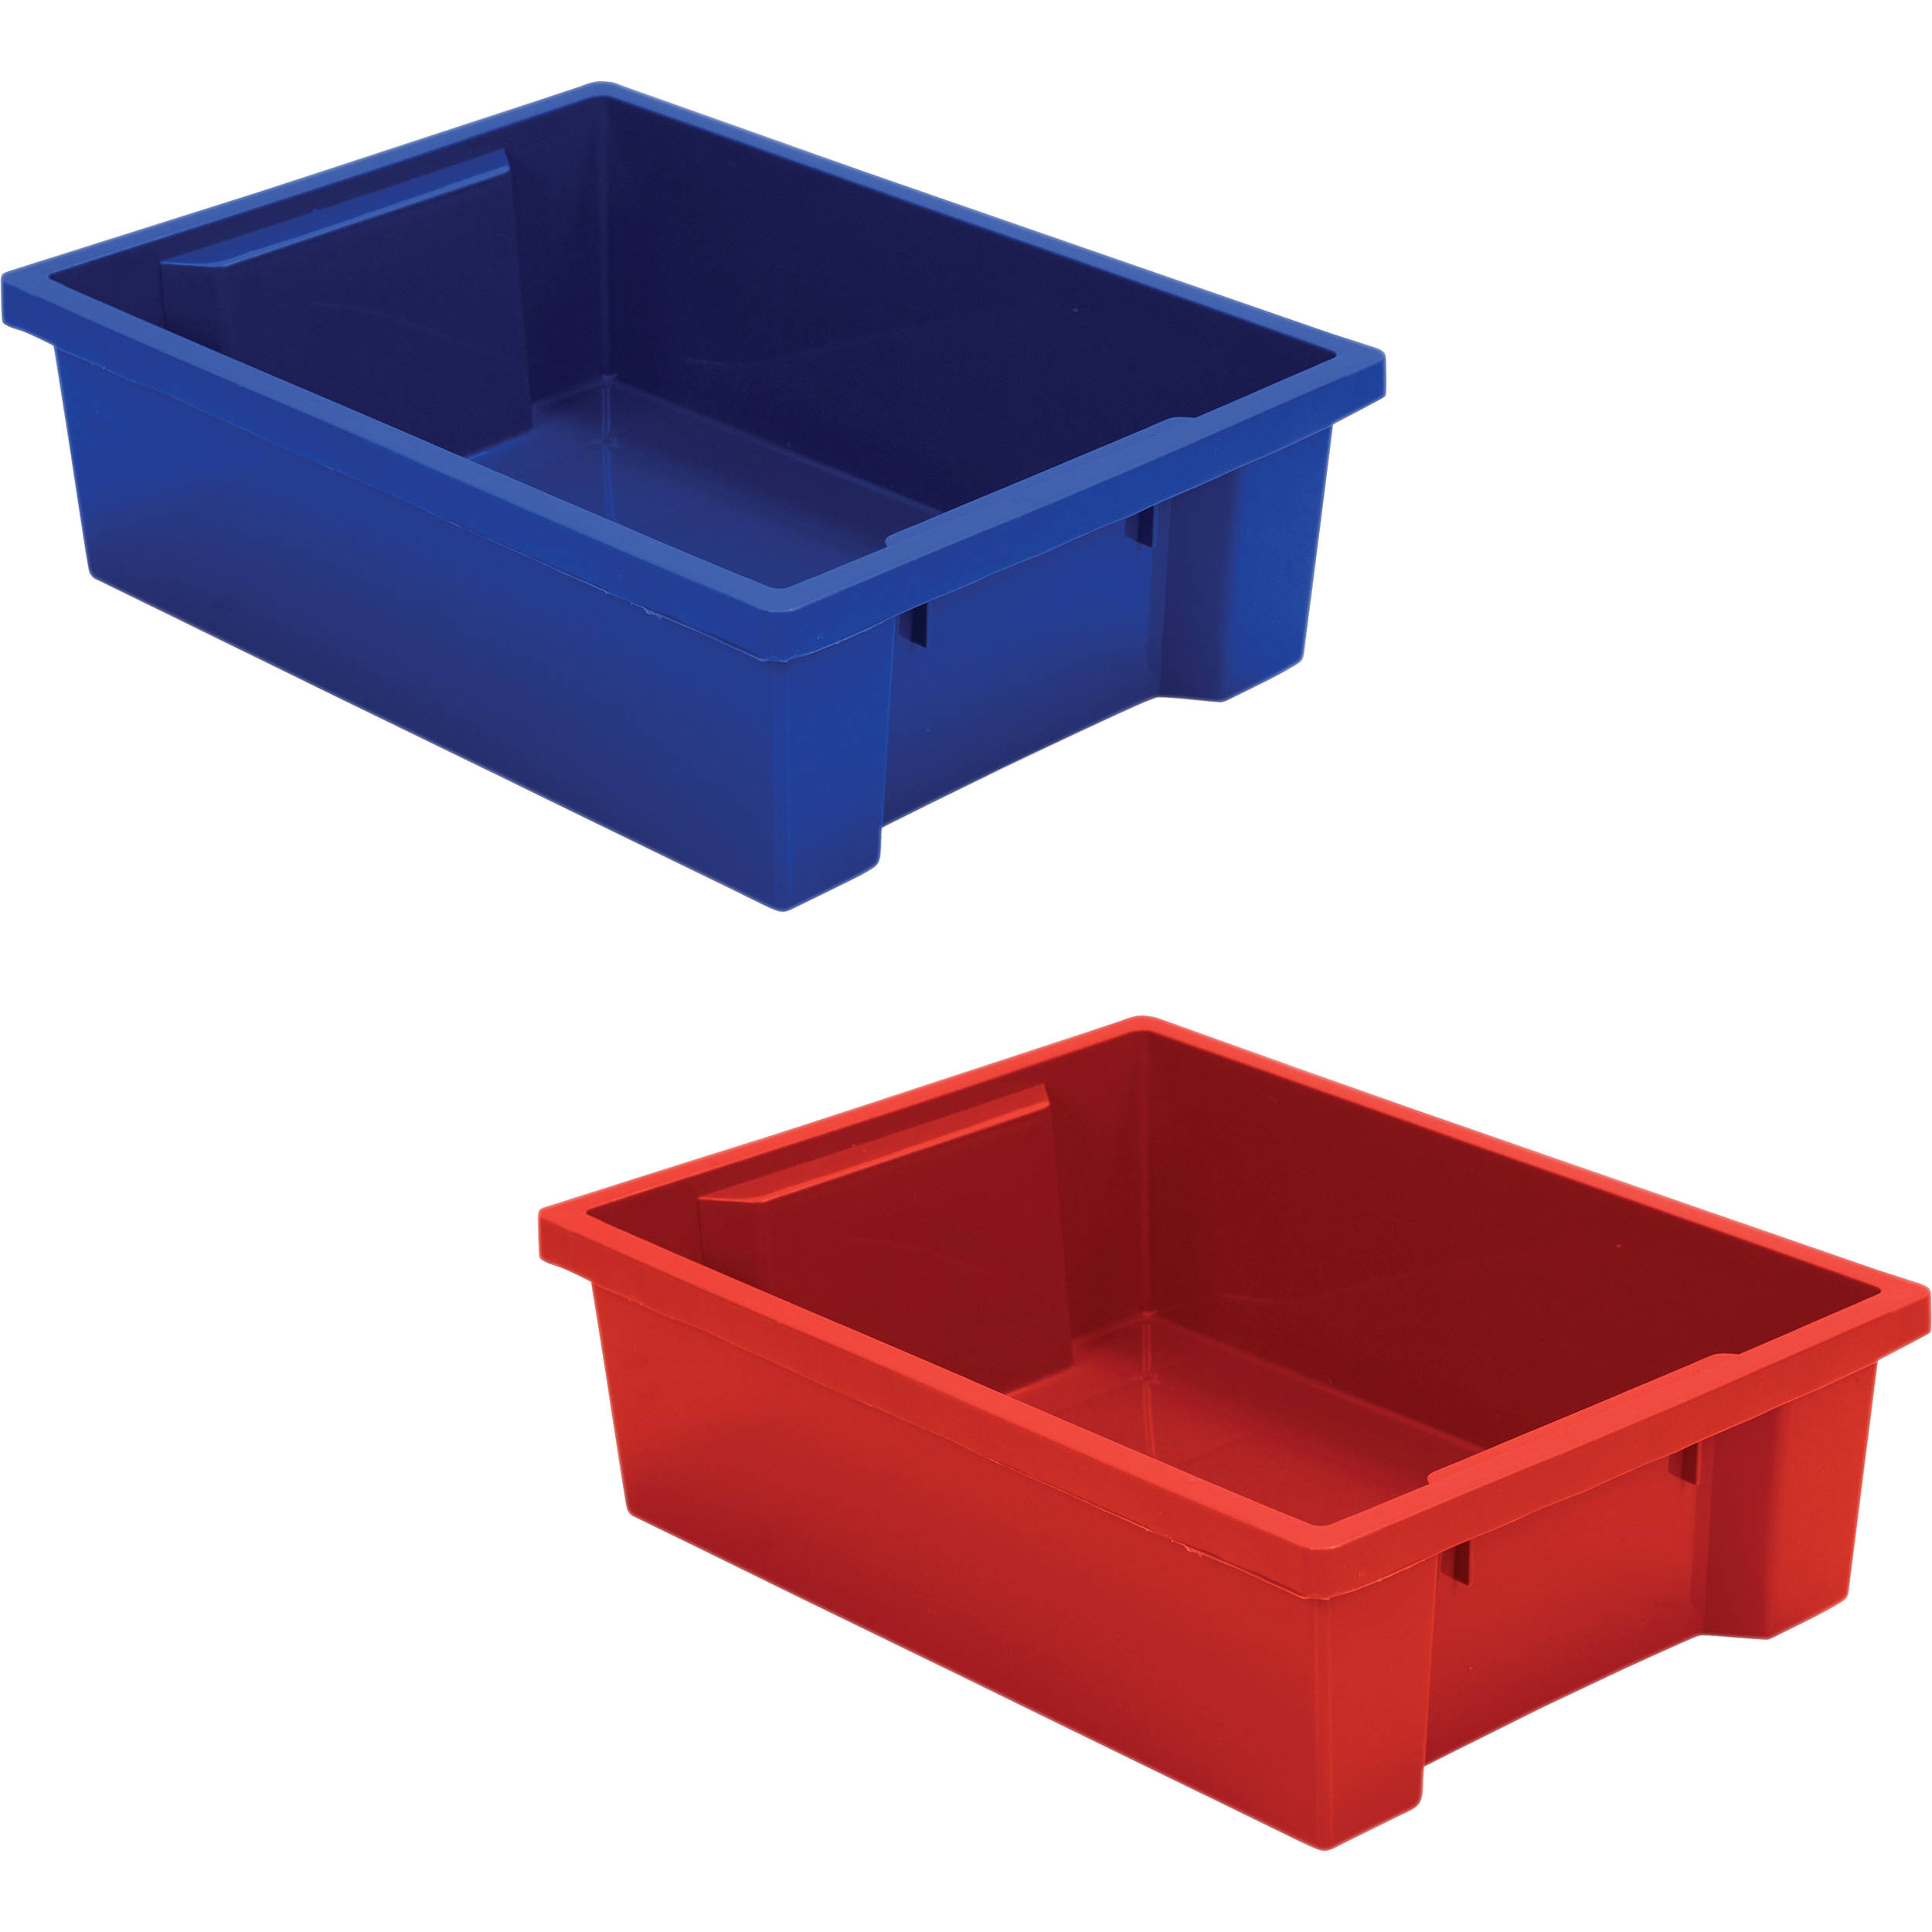 Red tubs